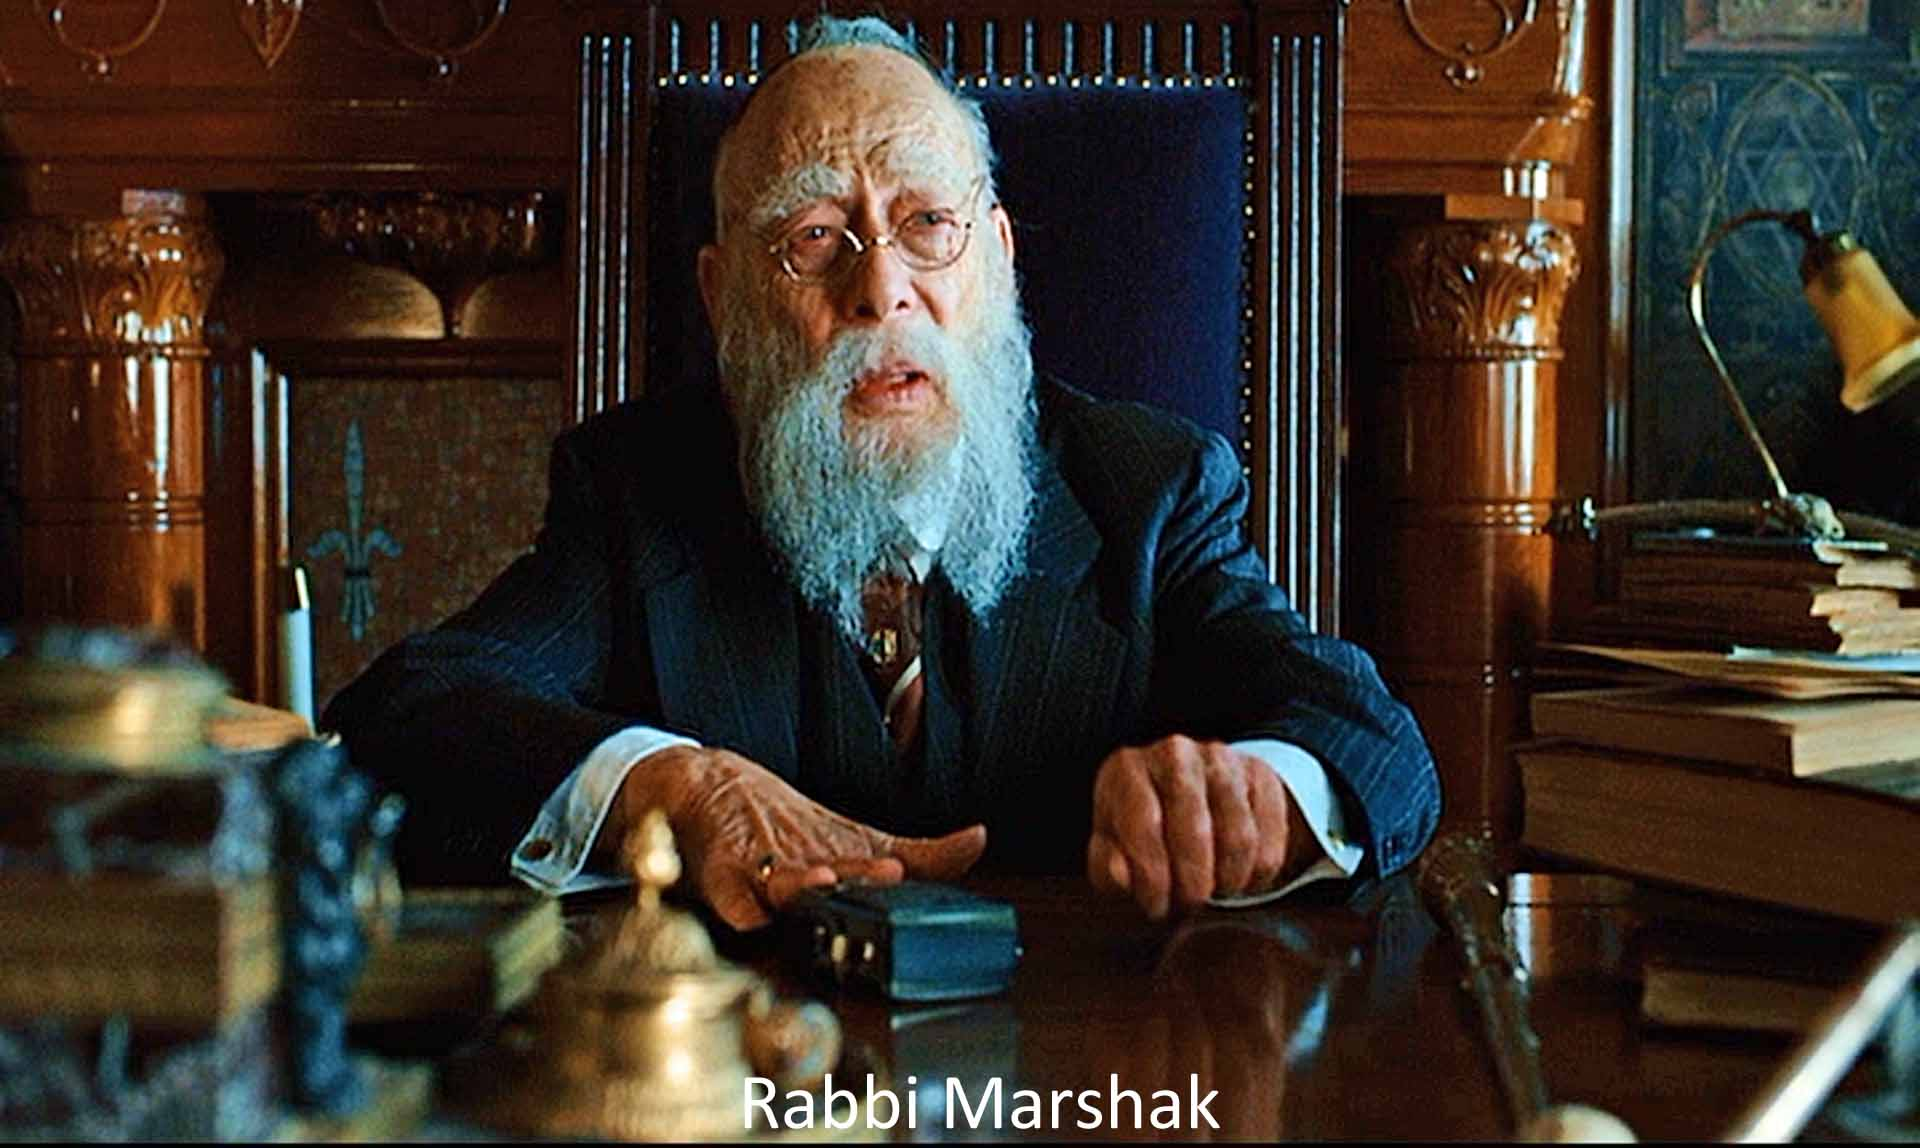 Rabbi from Coen brothers' film A Serious Man